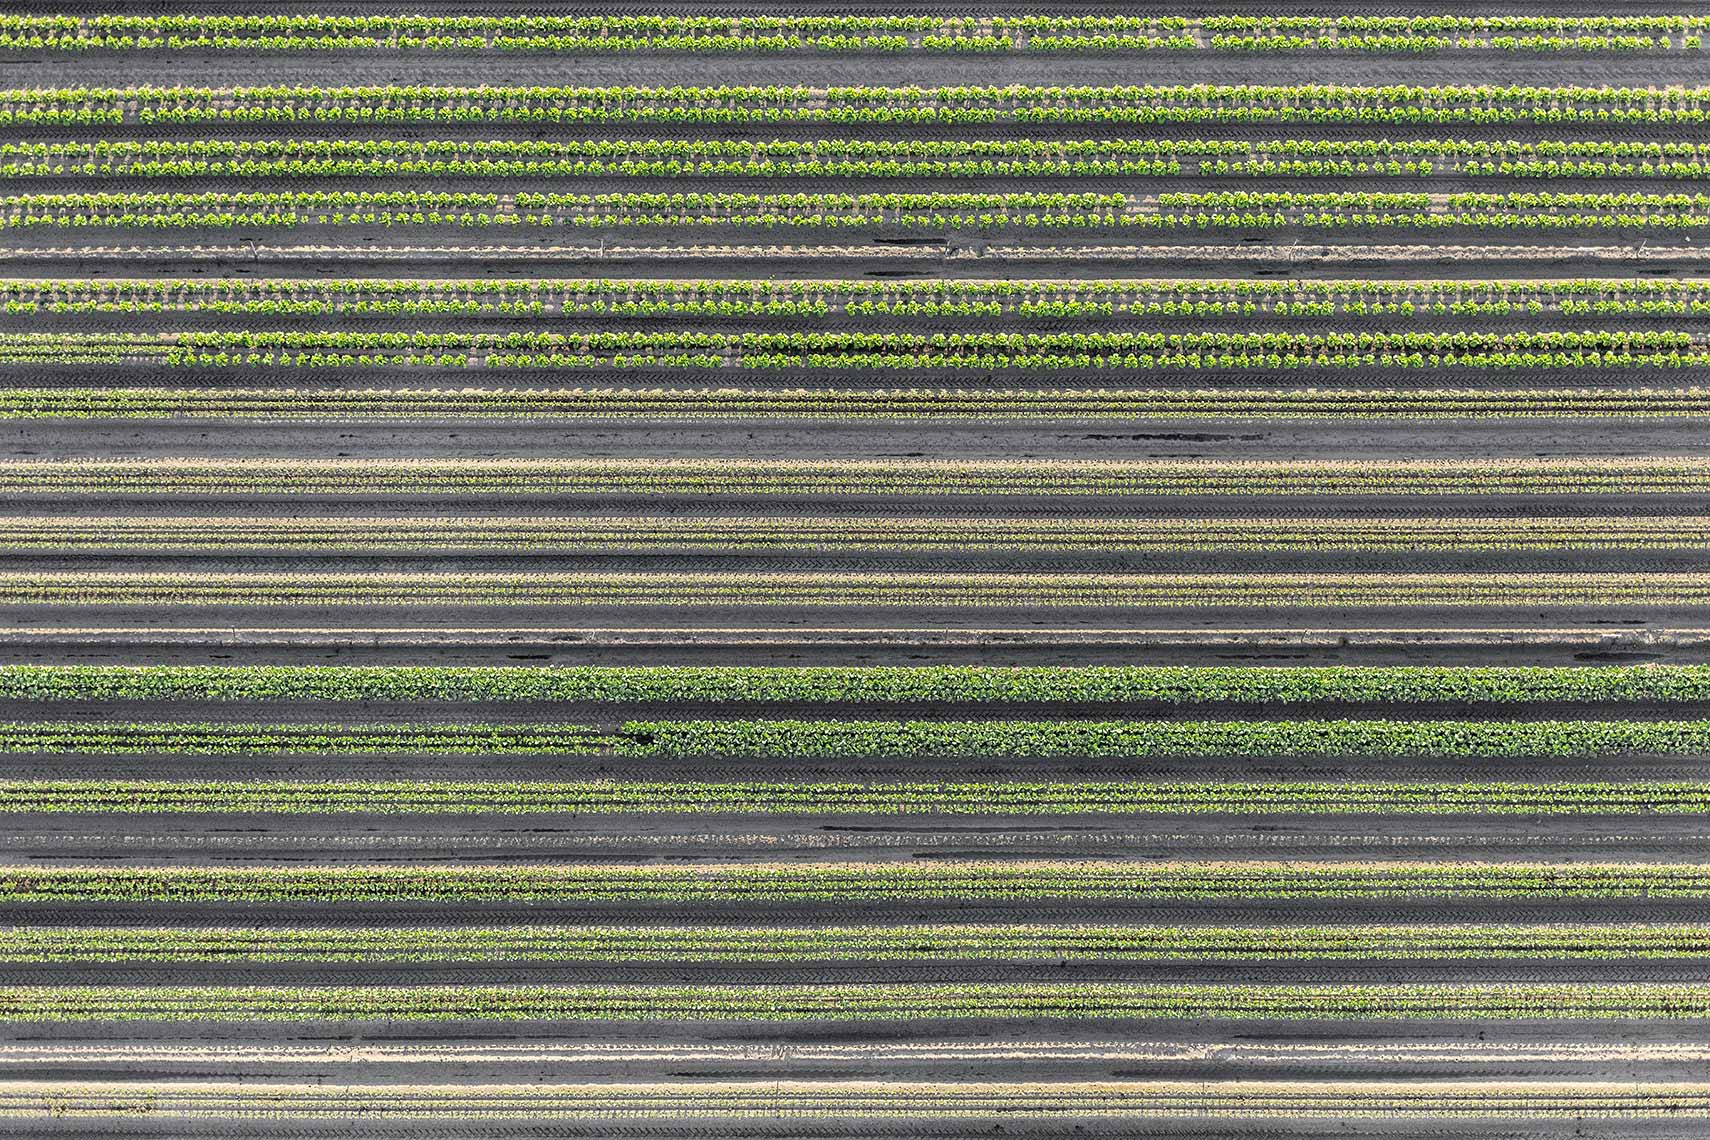 Aerial Landscape Agriculture